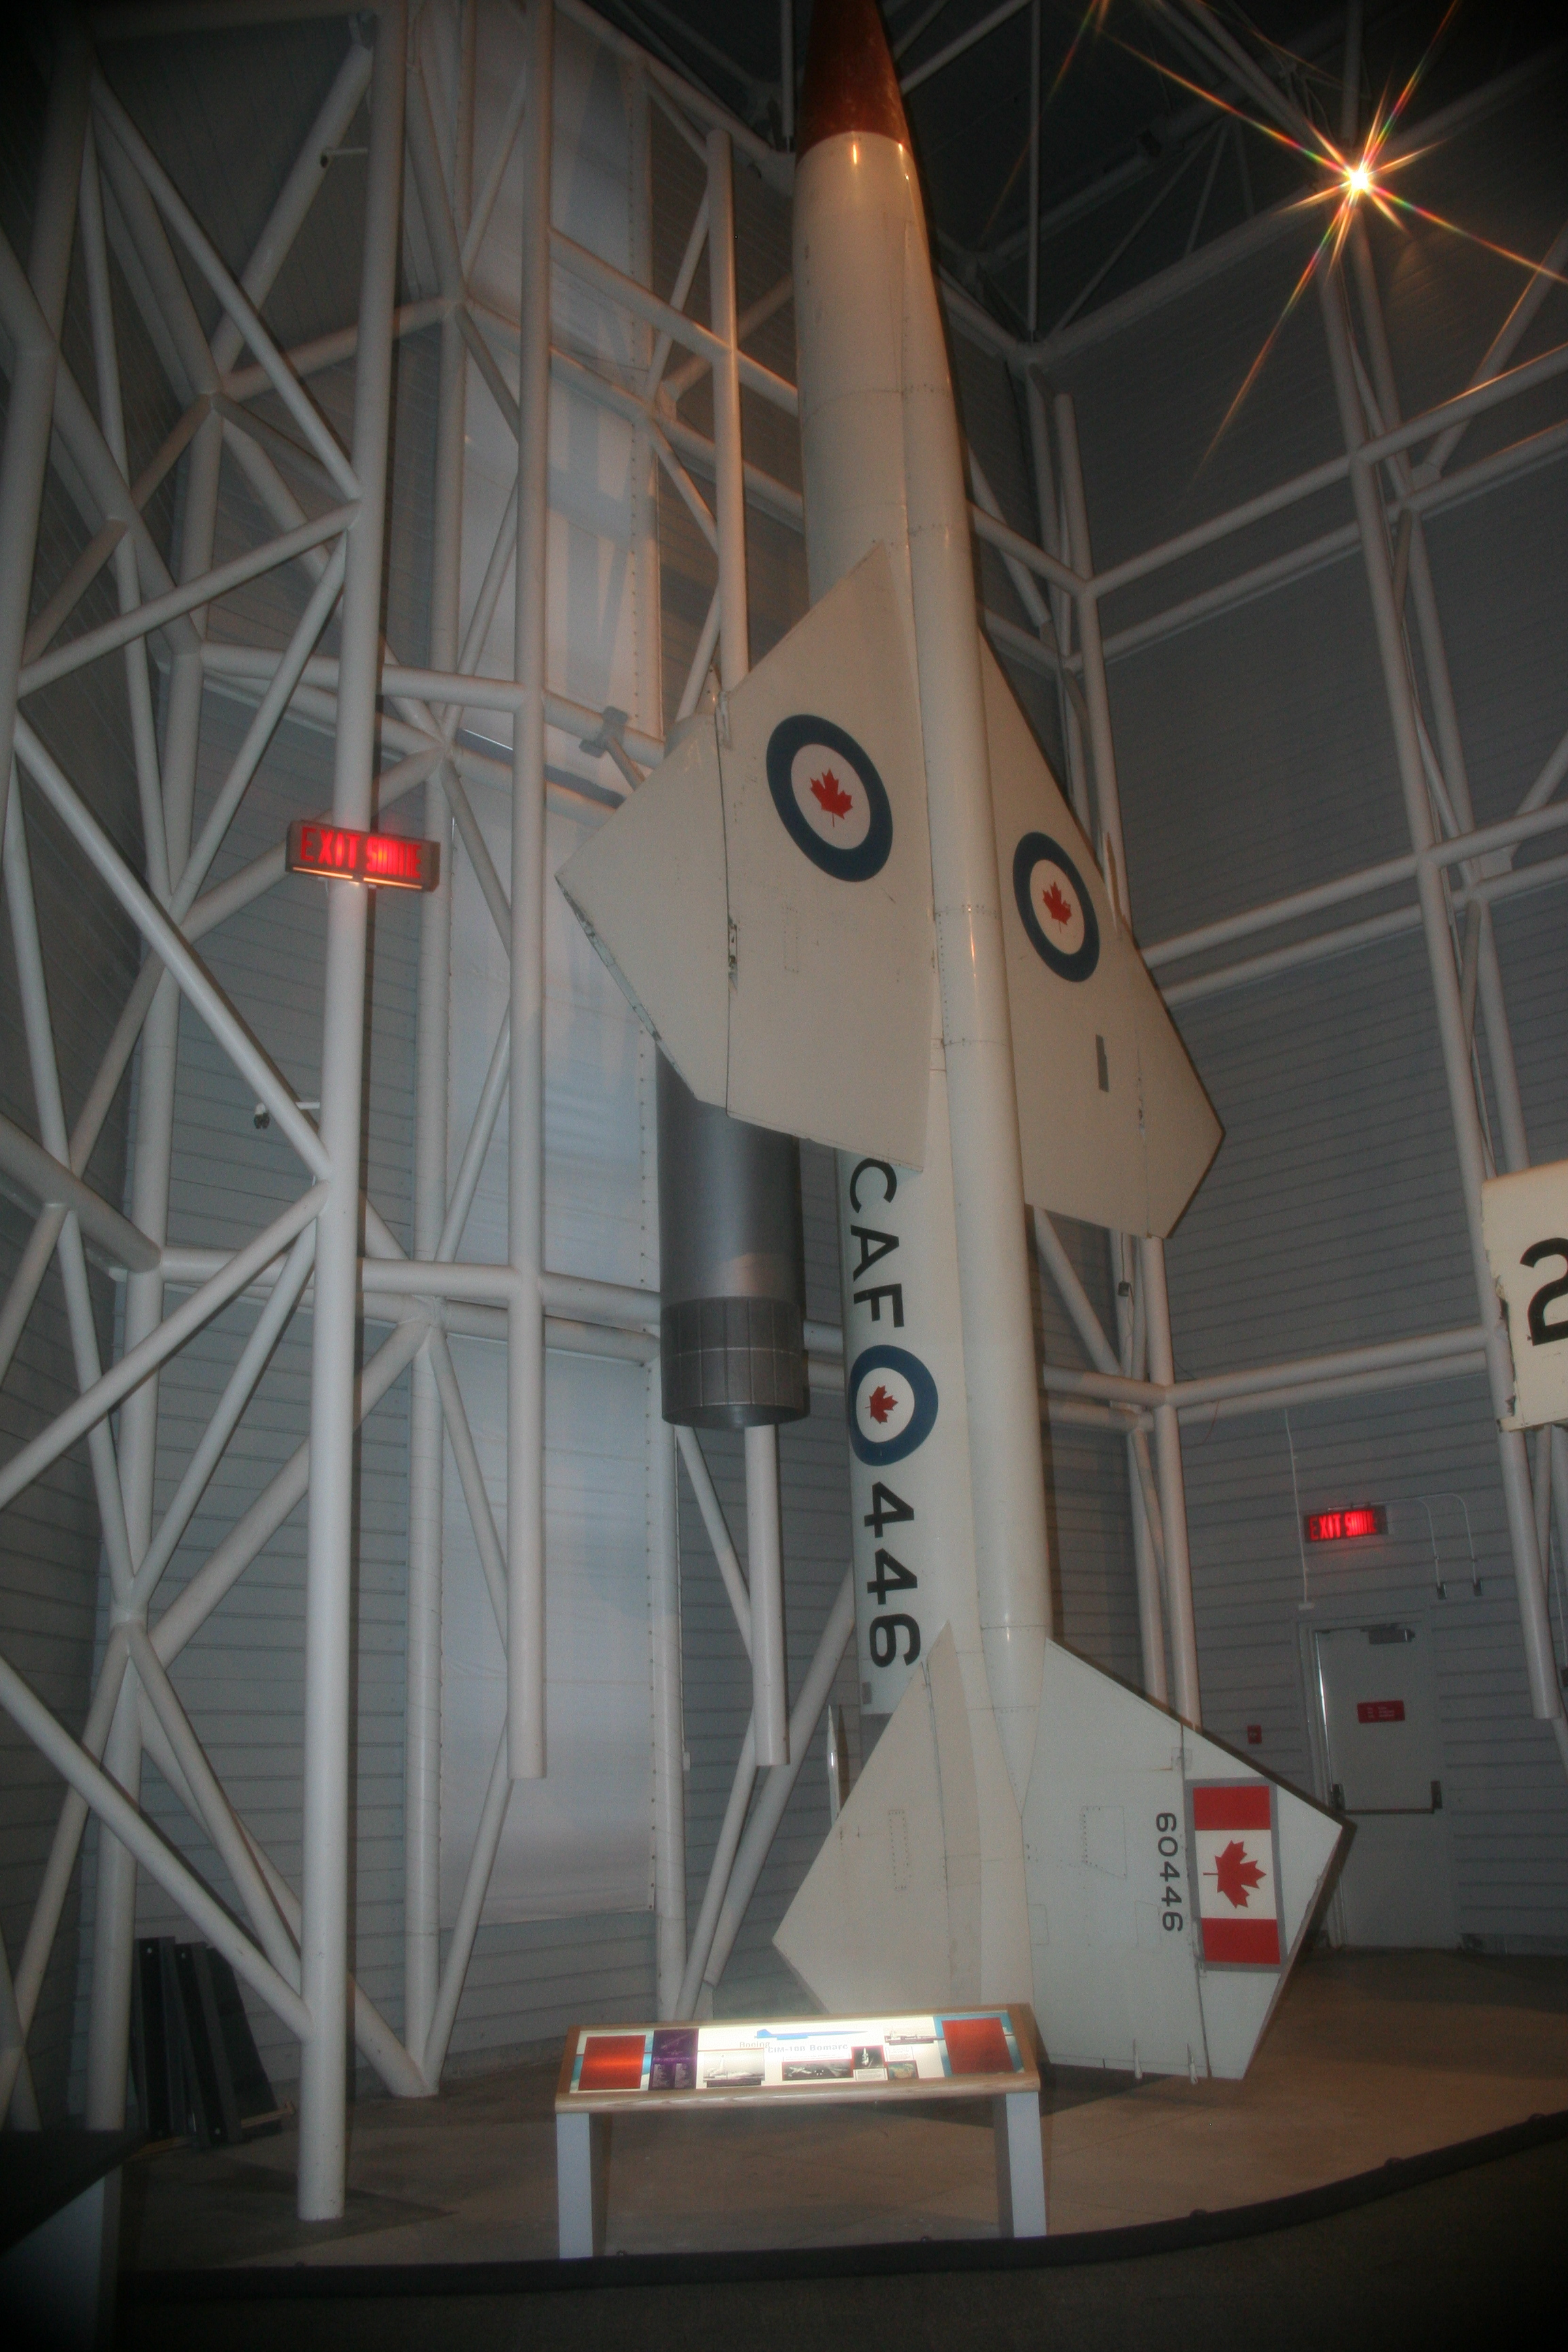 A missile with maple leaves surrounded by blue rings stands upright.